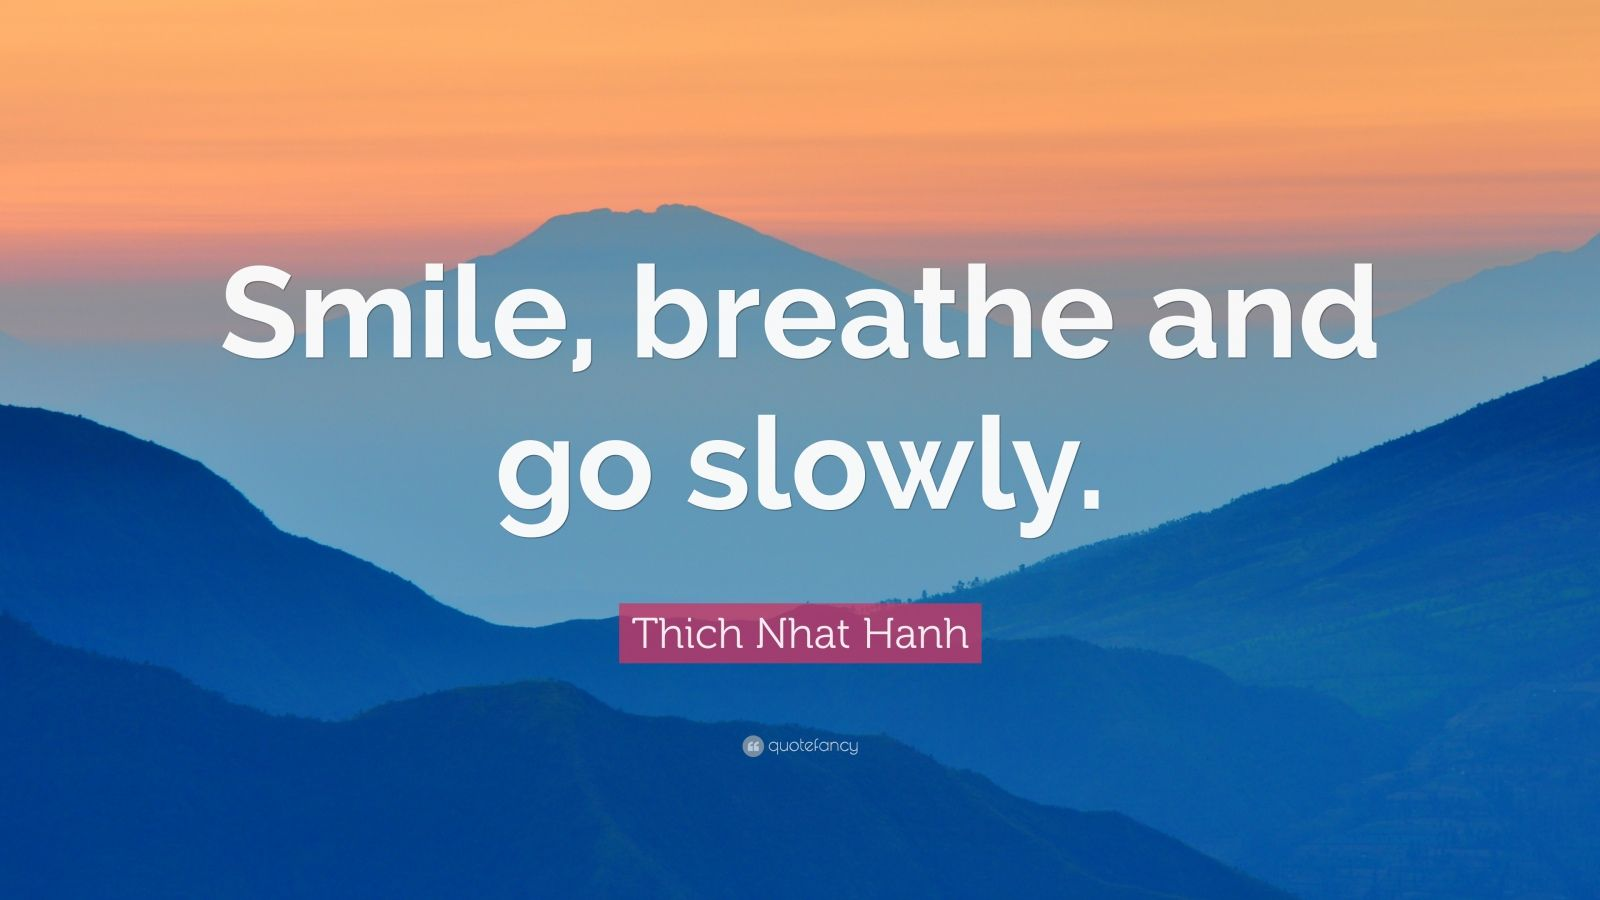 Wallpaper Of Yoga Quote Thich Nhat Hanh Quote Smile Breathe And Go Slowly 12